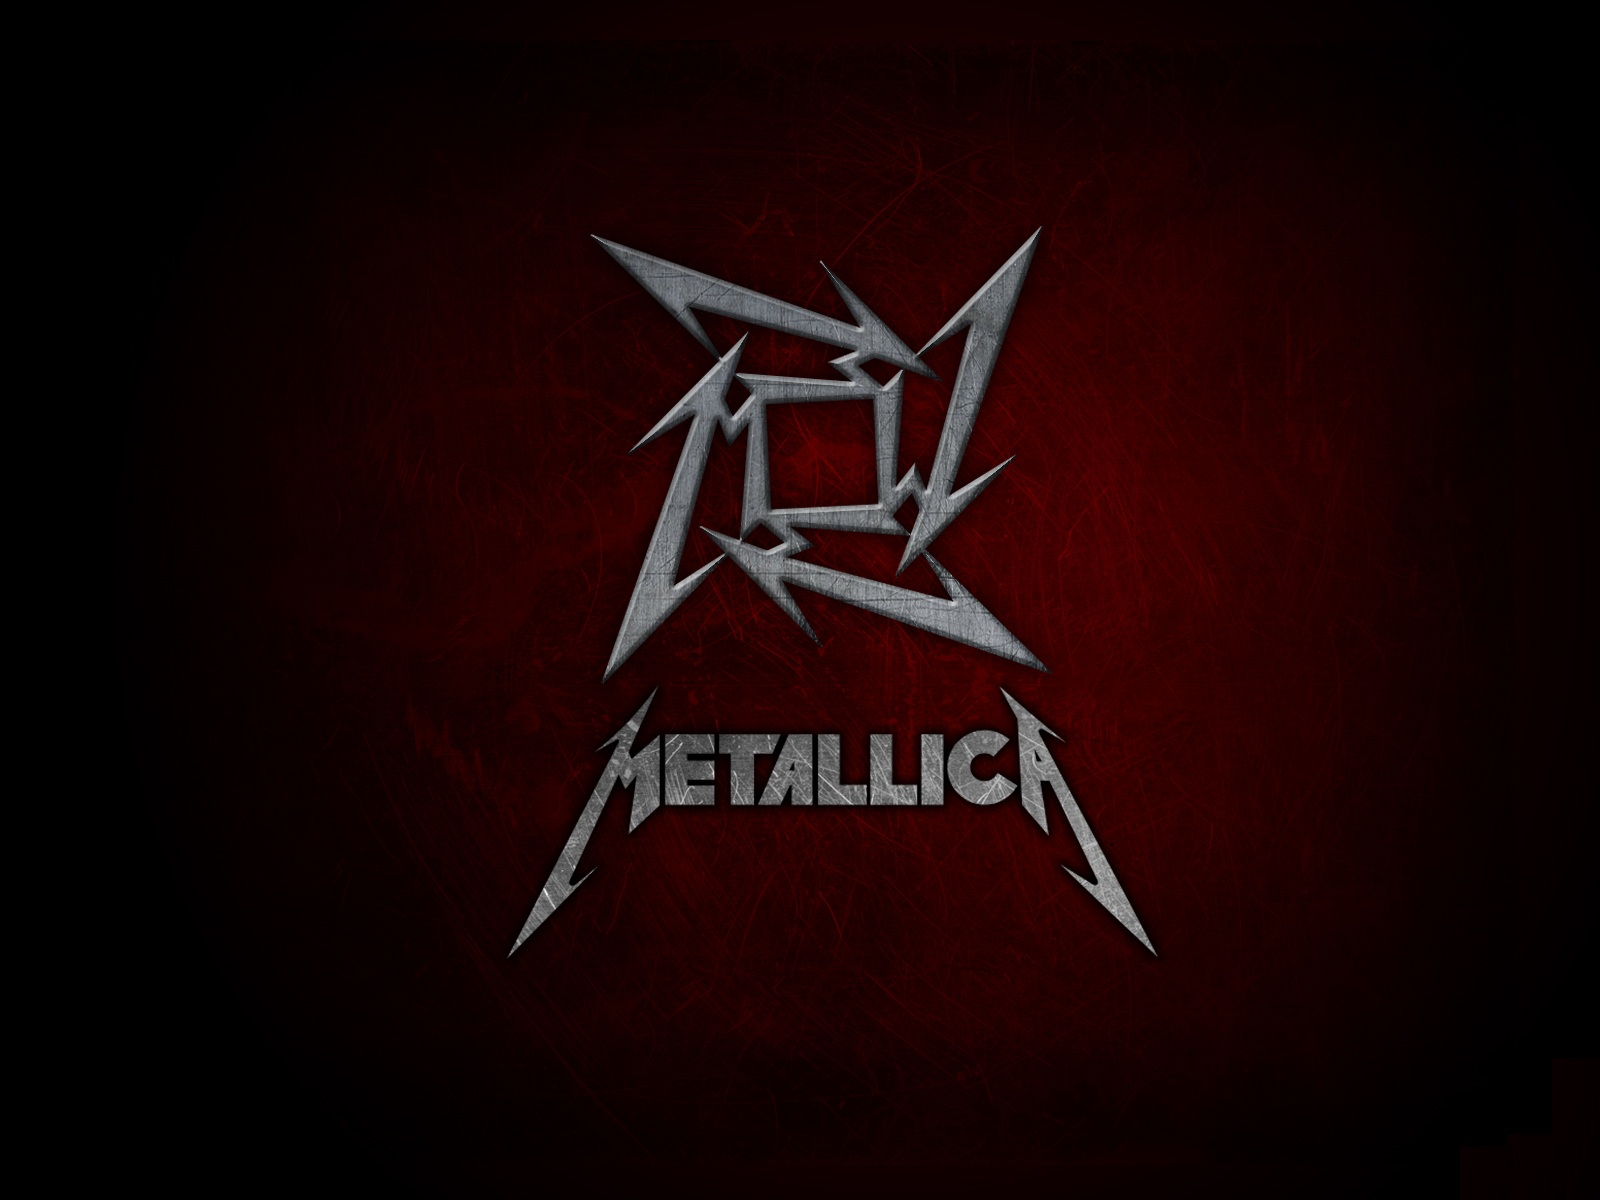 metallica wallpaper logo